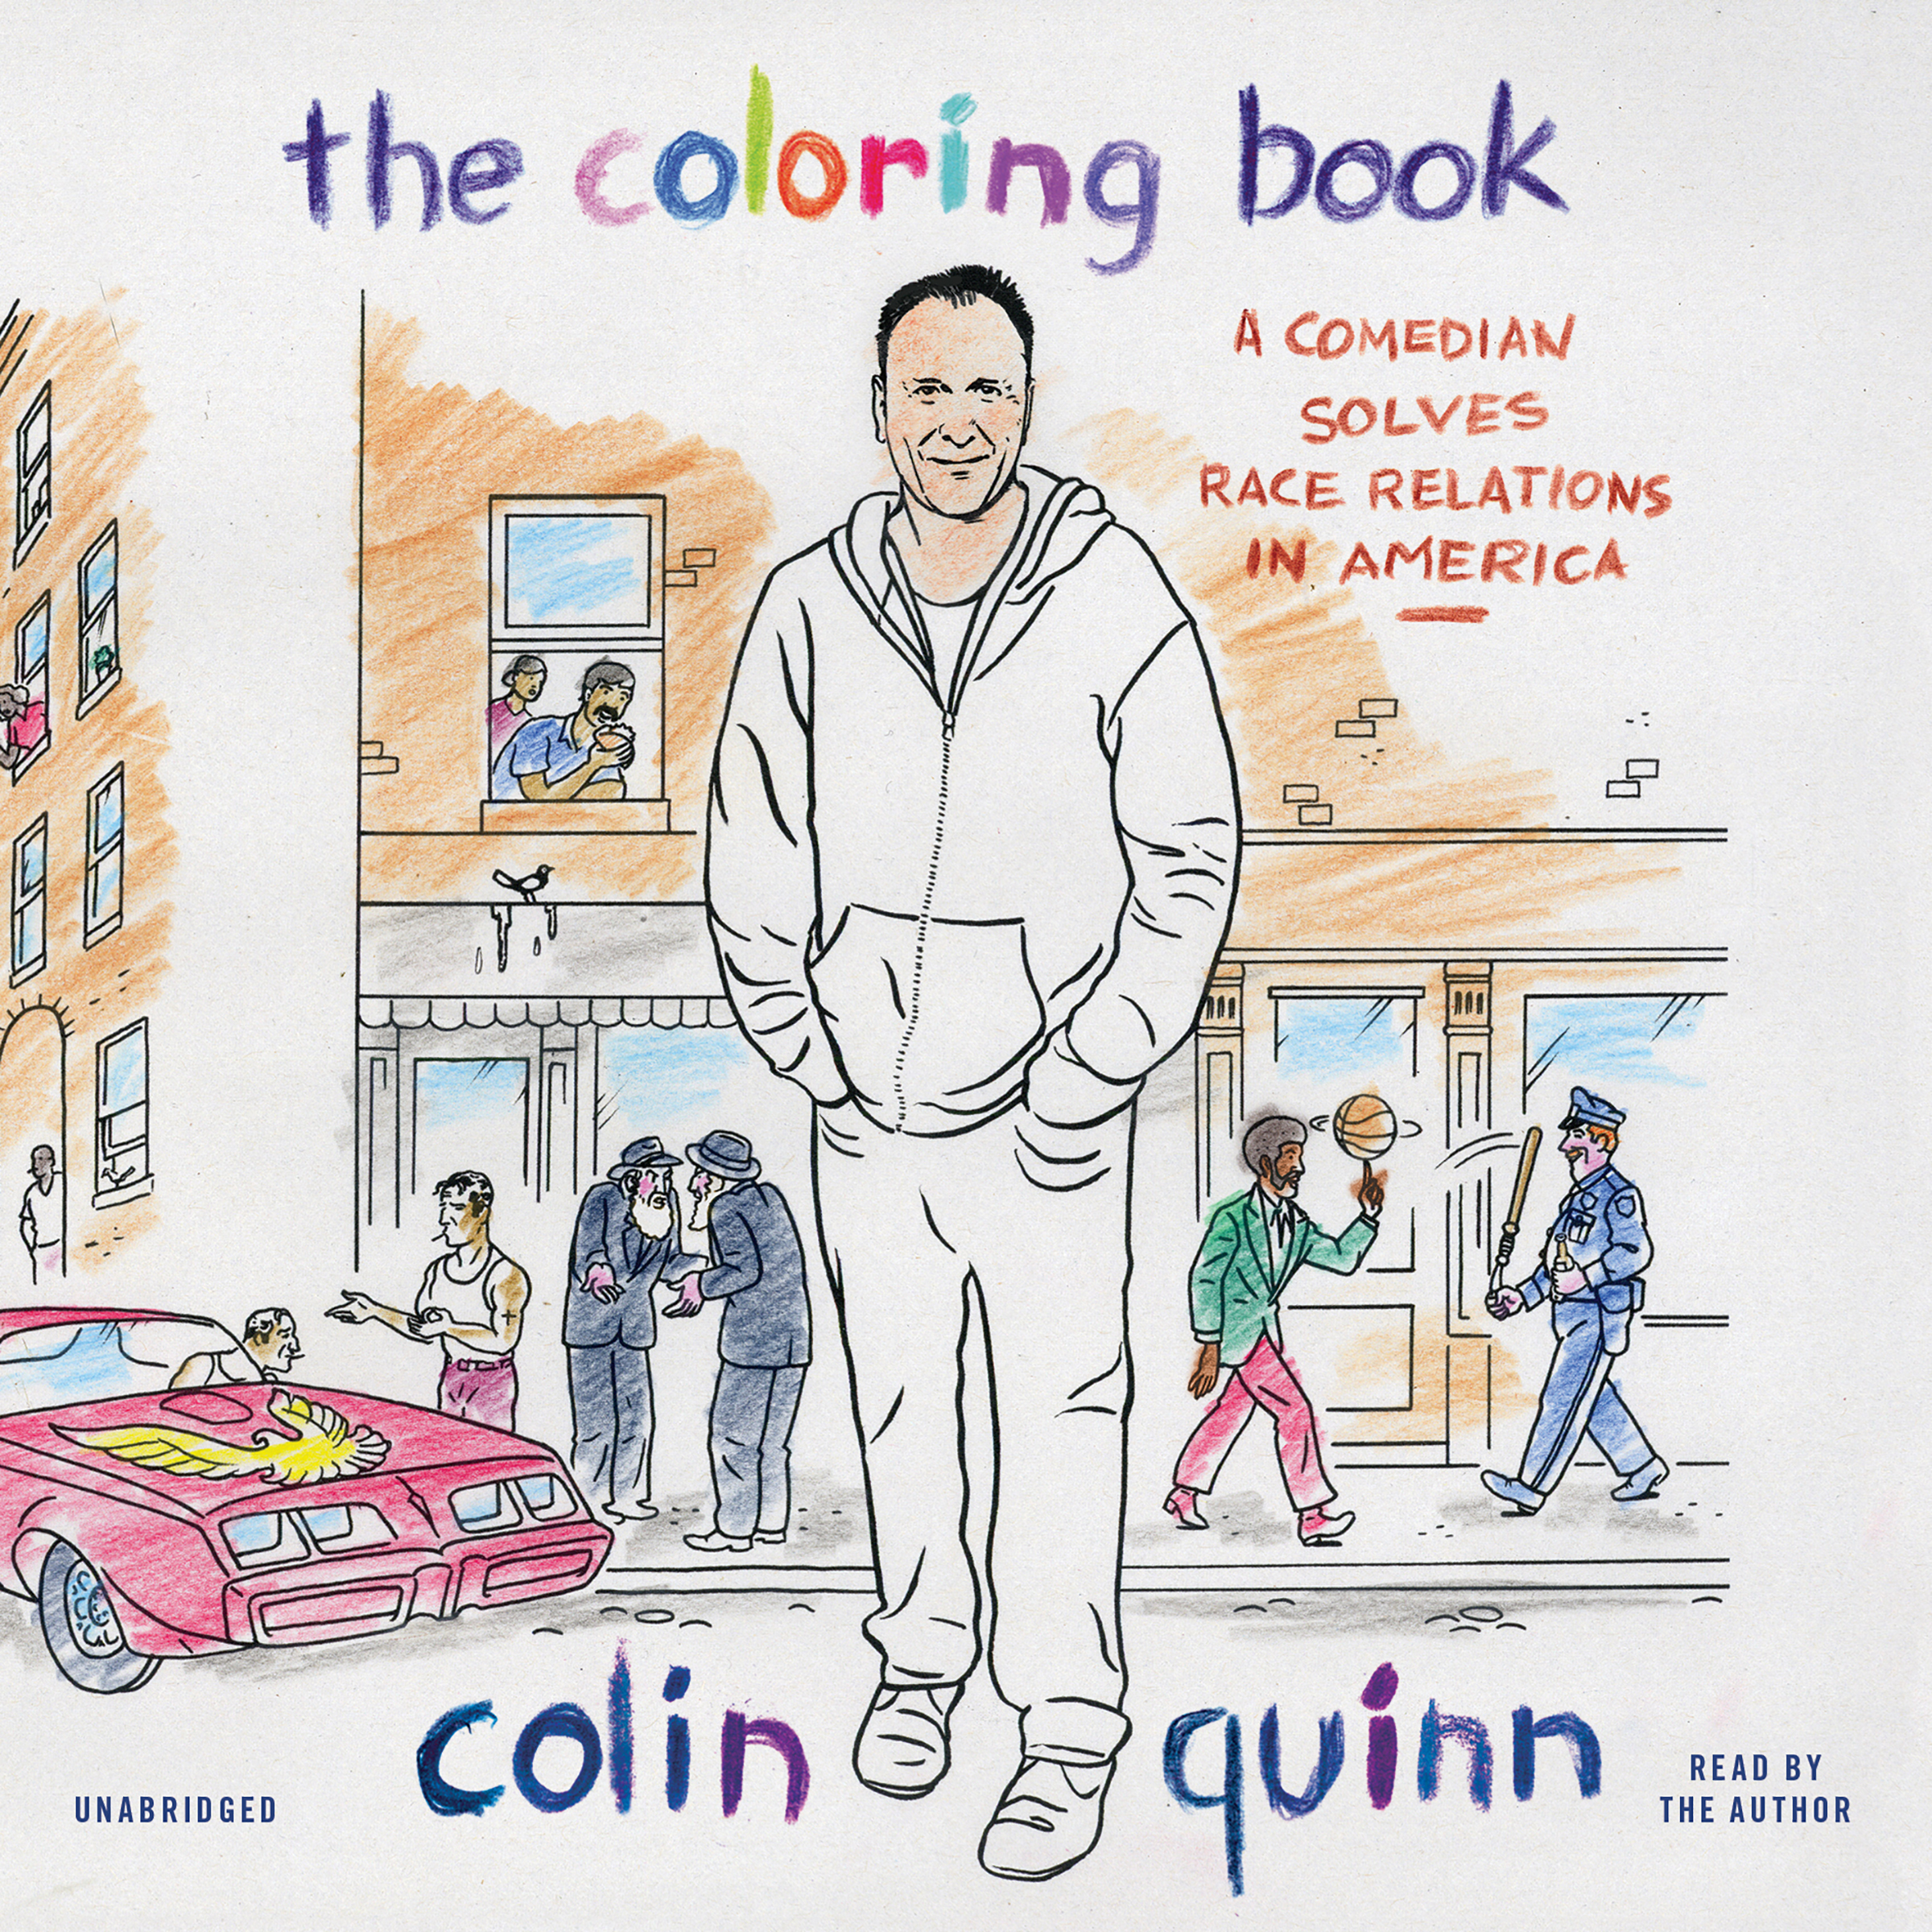 Coloring book quinn - Extended Audio Sample The Coloring Book A Comedian Solves Race Relations In America Audiobook By Colin Quinn